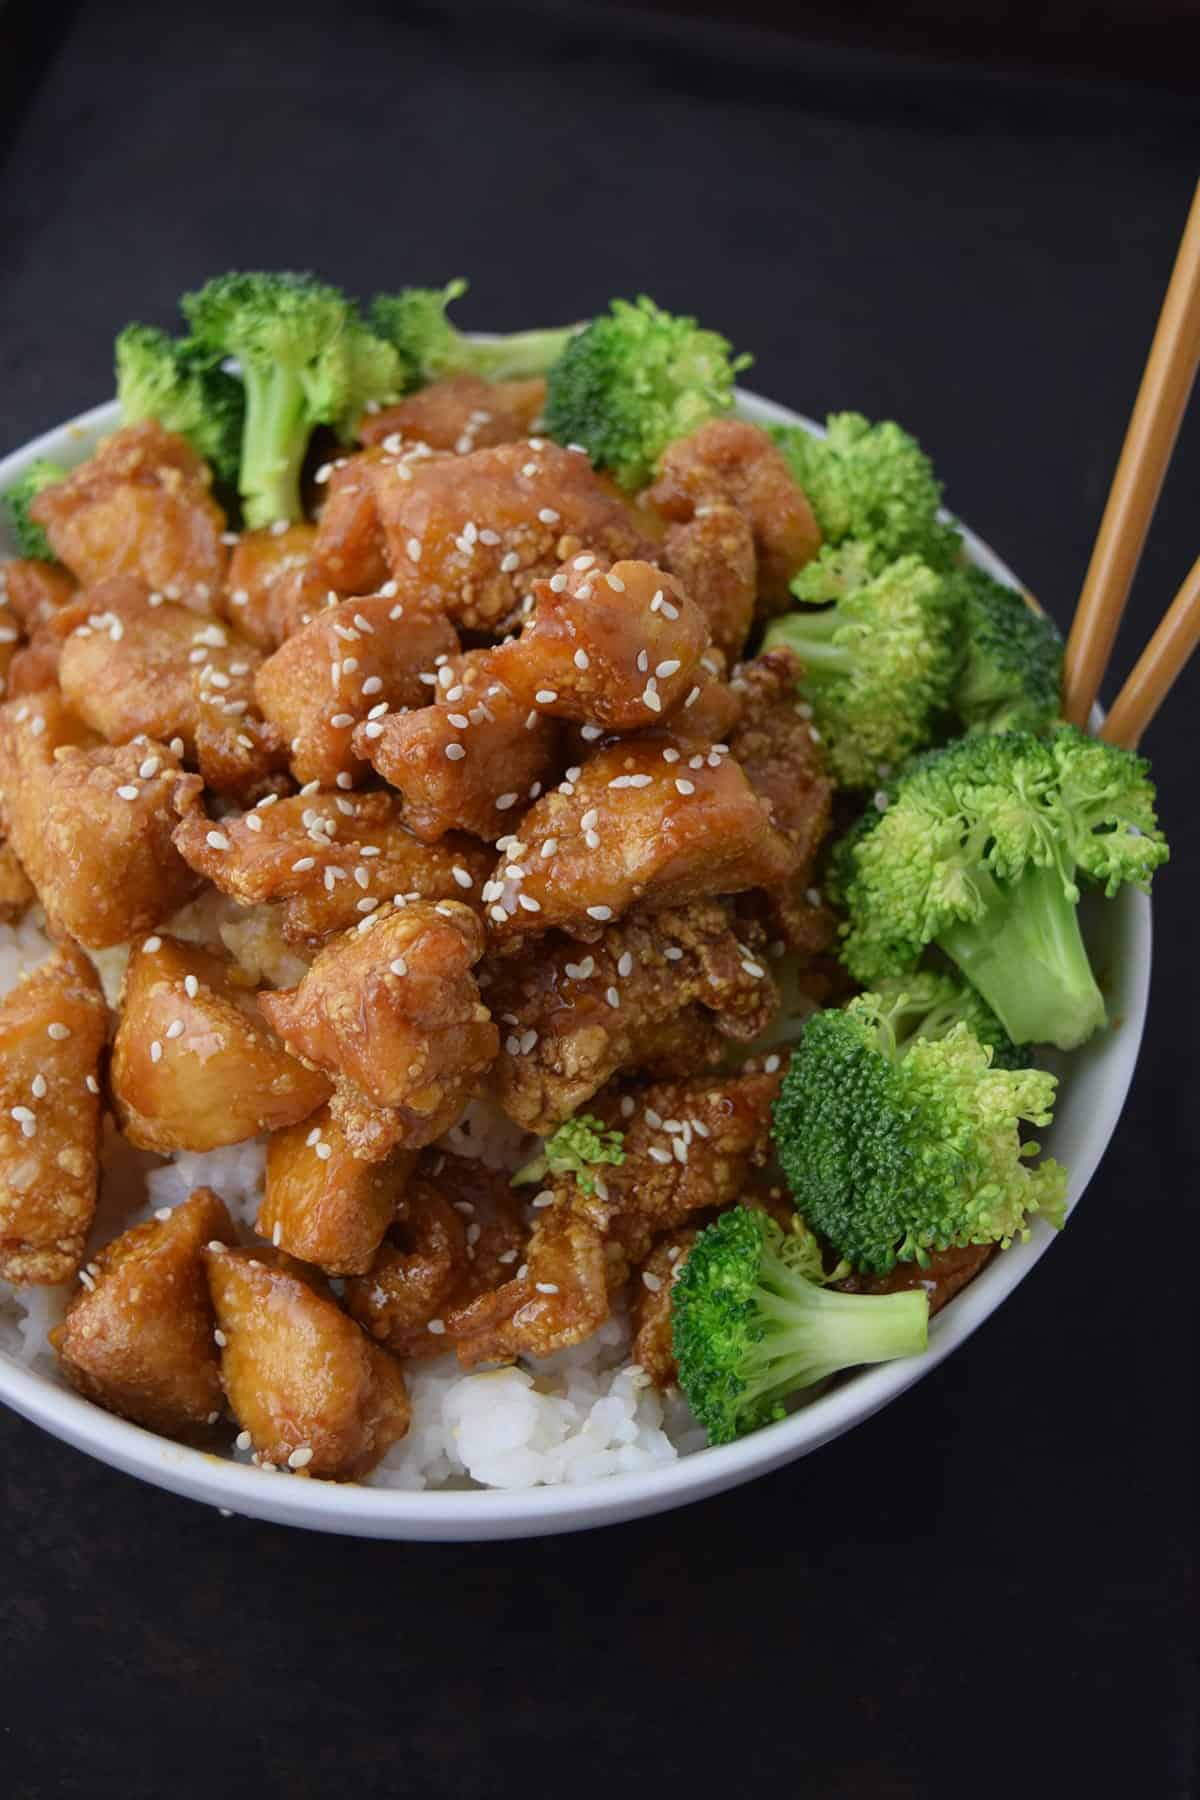 Glazed honey sesame chicken with sesame seeds in white bowl with broccoli with wooden chopsticks on black surface.